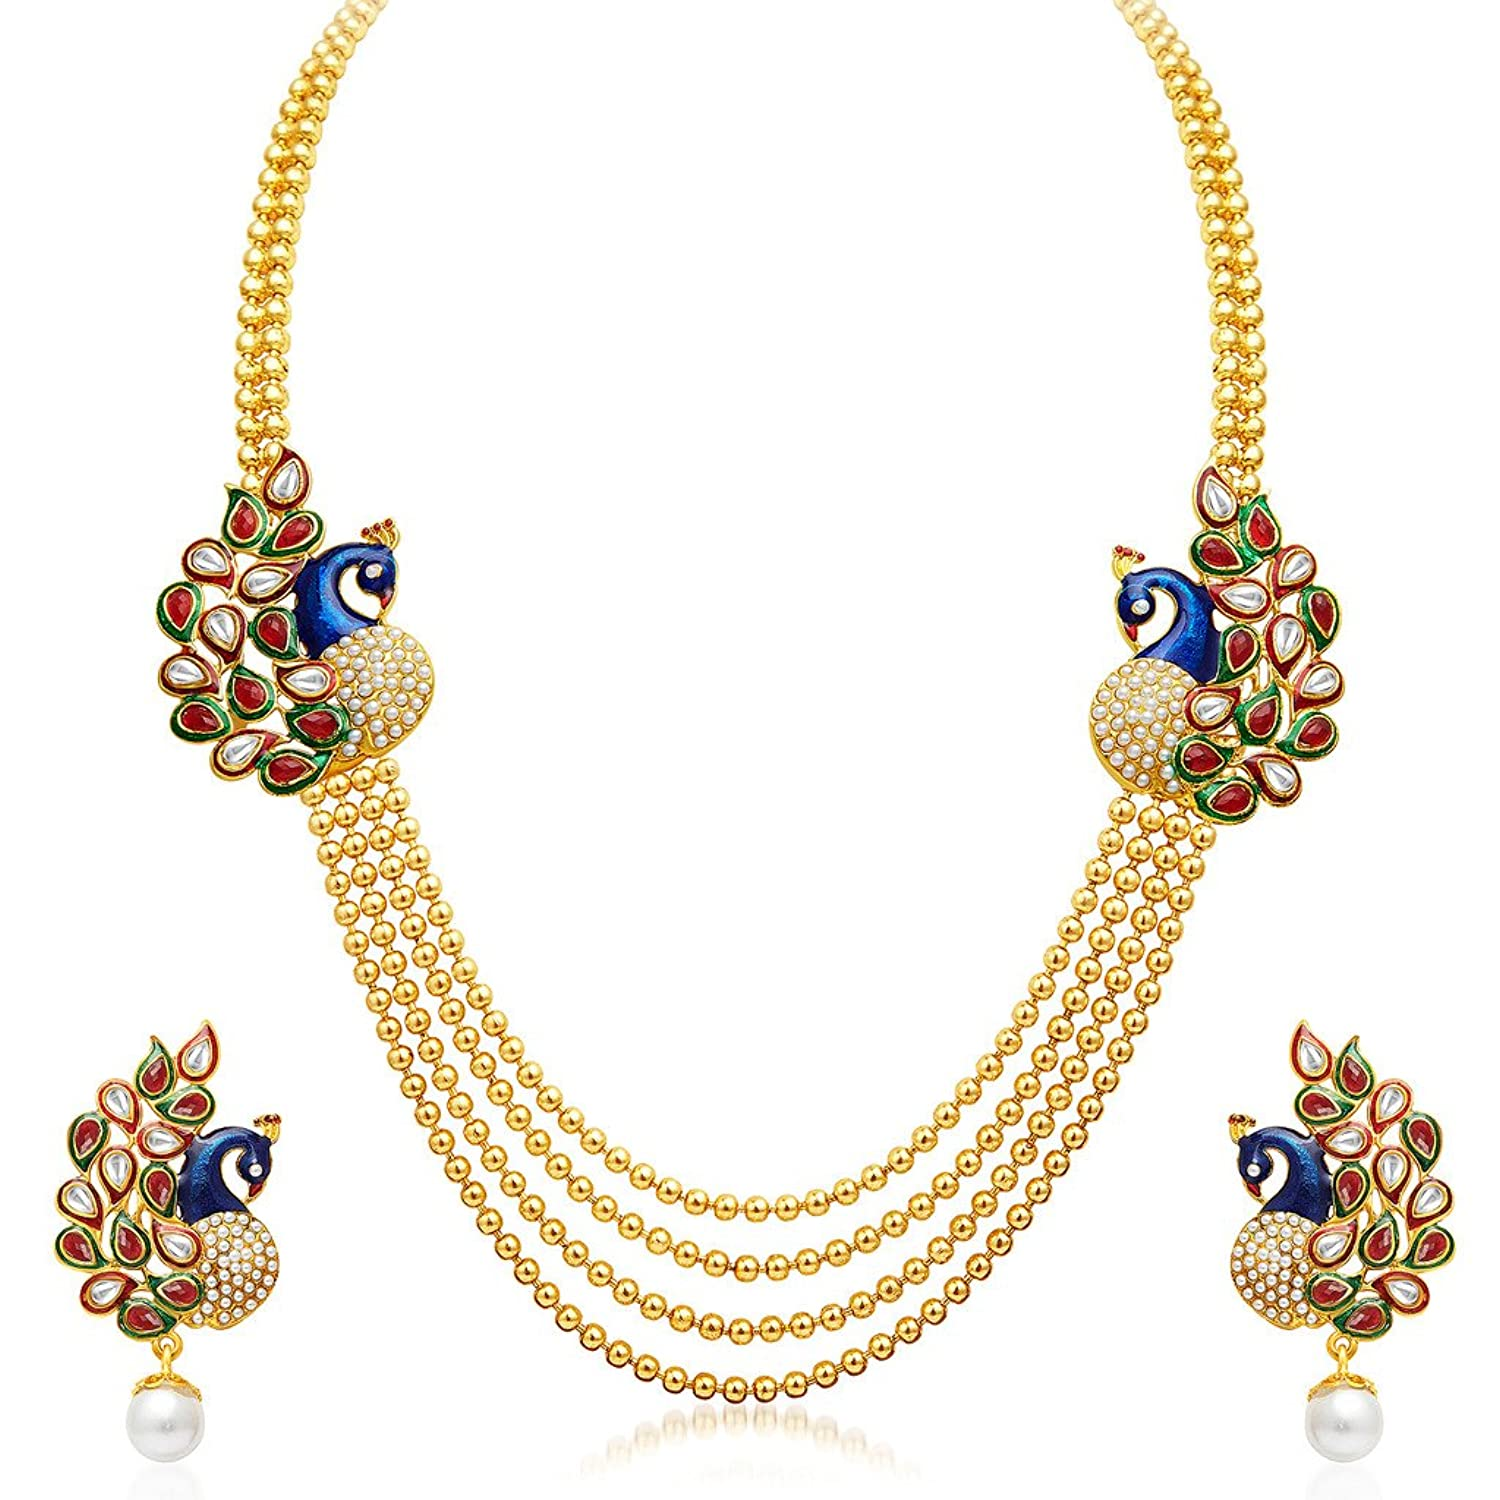 Gold necklace designs with price in rupees jewelry gallery - Sukkhi Gold Plated Multi Strand Necklace With Drop Earring For Women